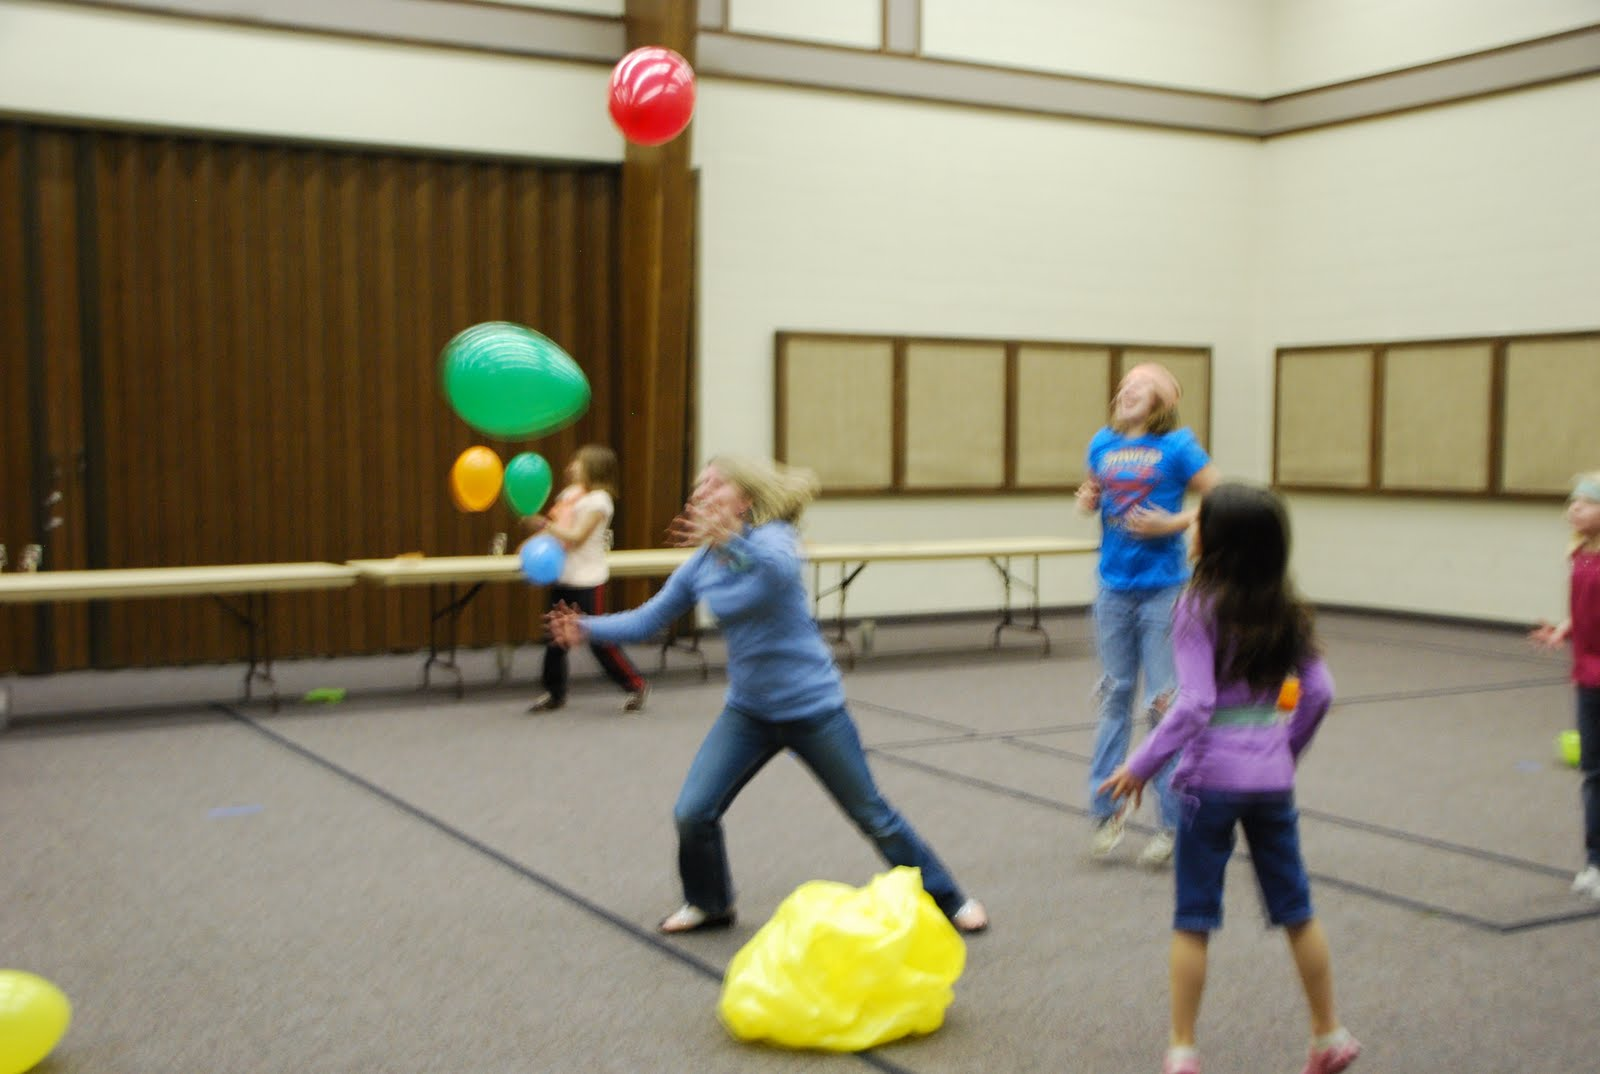 Wisconsin notes minute to win it for Air balloon games